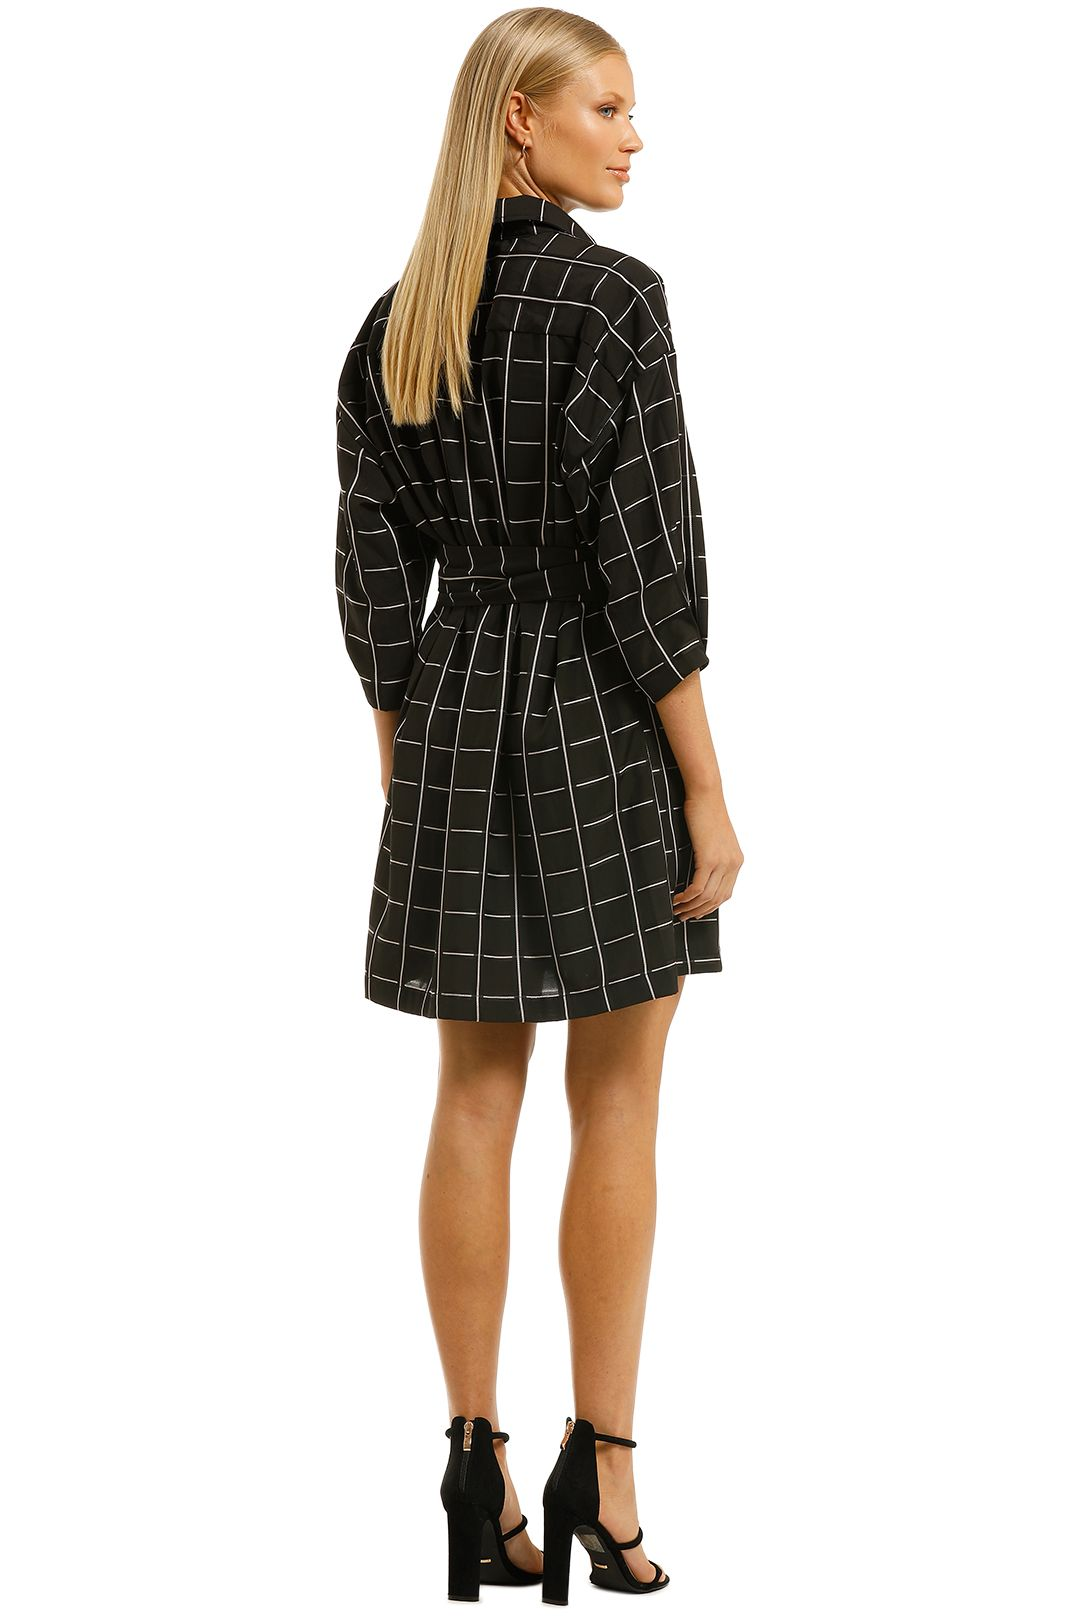 Cooper-St-Liberty-Shirt-Dress-Check-Back